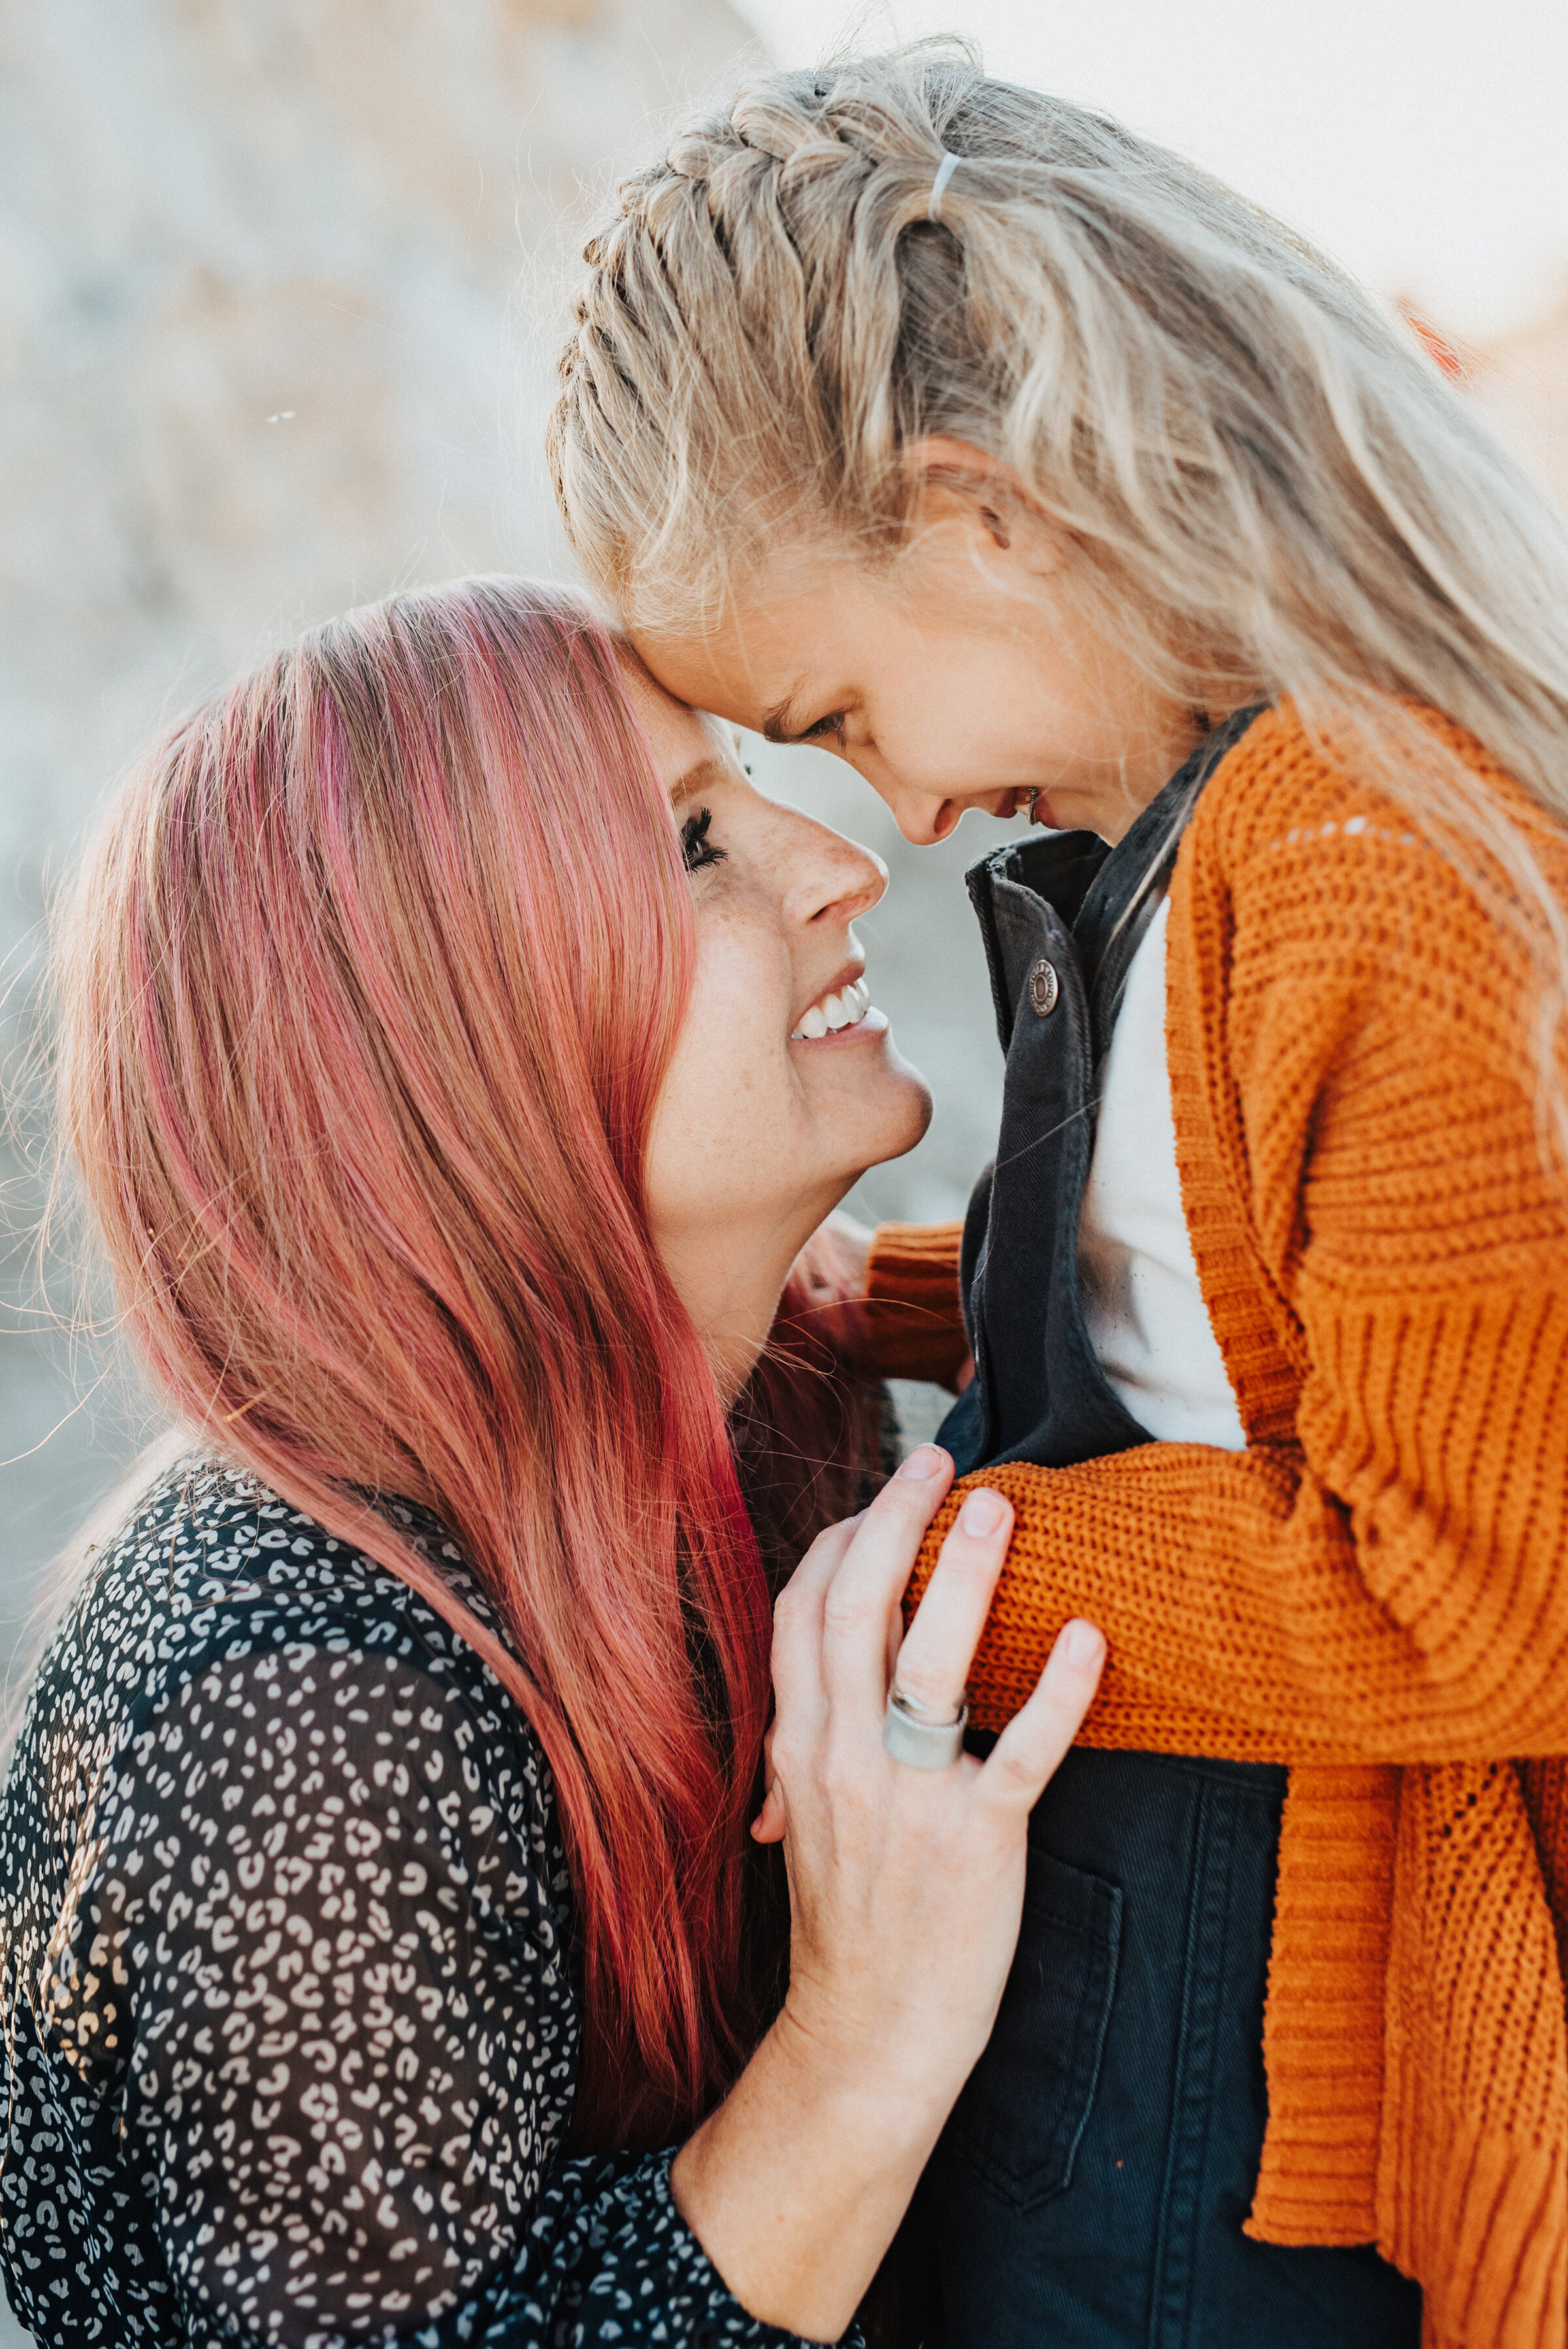 A beautiful mother and daughter share a sweet moment in a unique family photo shoot by Kristi Alyse Photography. Mother and daughter pose inspiration ideas and goals braided hair pink hair mother and daughter outfit inspiration ideas and goals family picture goals girl outfit inspiration perfect for fall photo shoots fall women outfit inspiration  #familypictures #utahphotographer #antelopeisland #outfitinspo #familypics #familyphotographer #pinkhair #saltlakecityphotog #slcfamilypictures